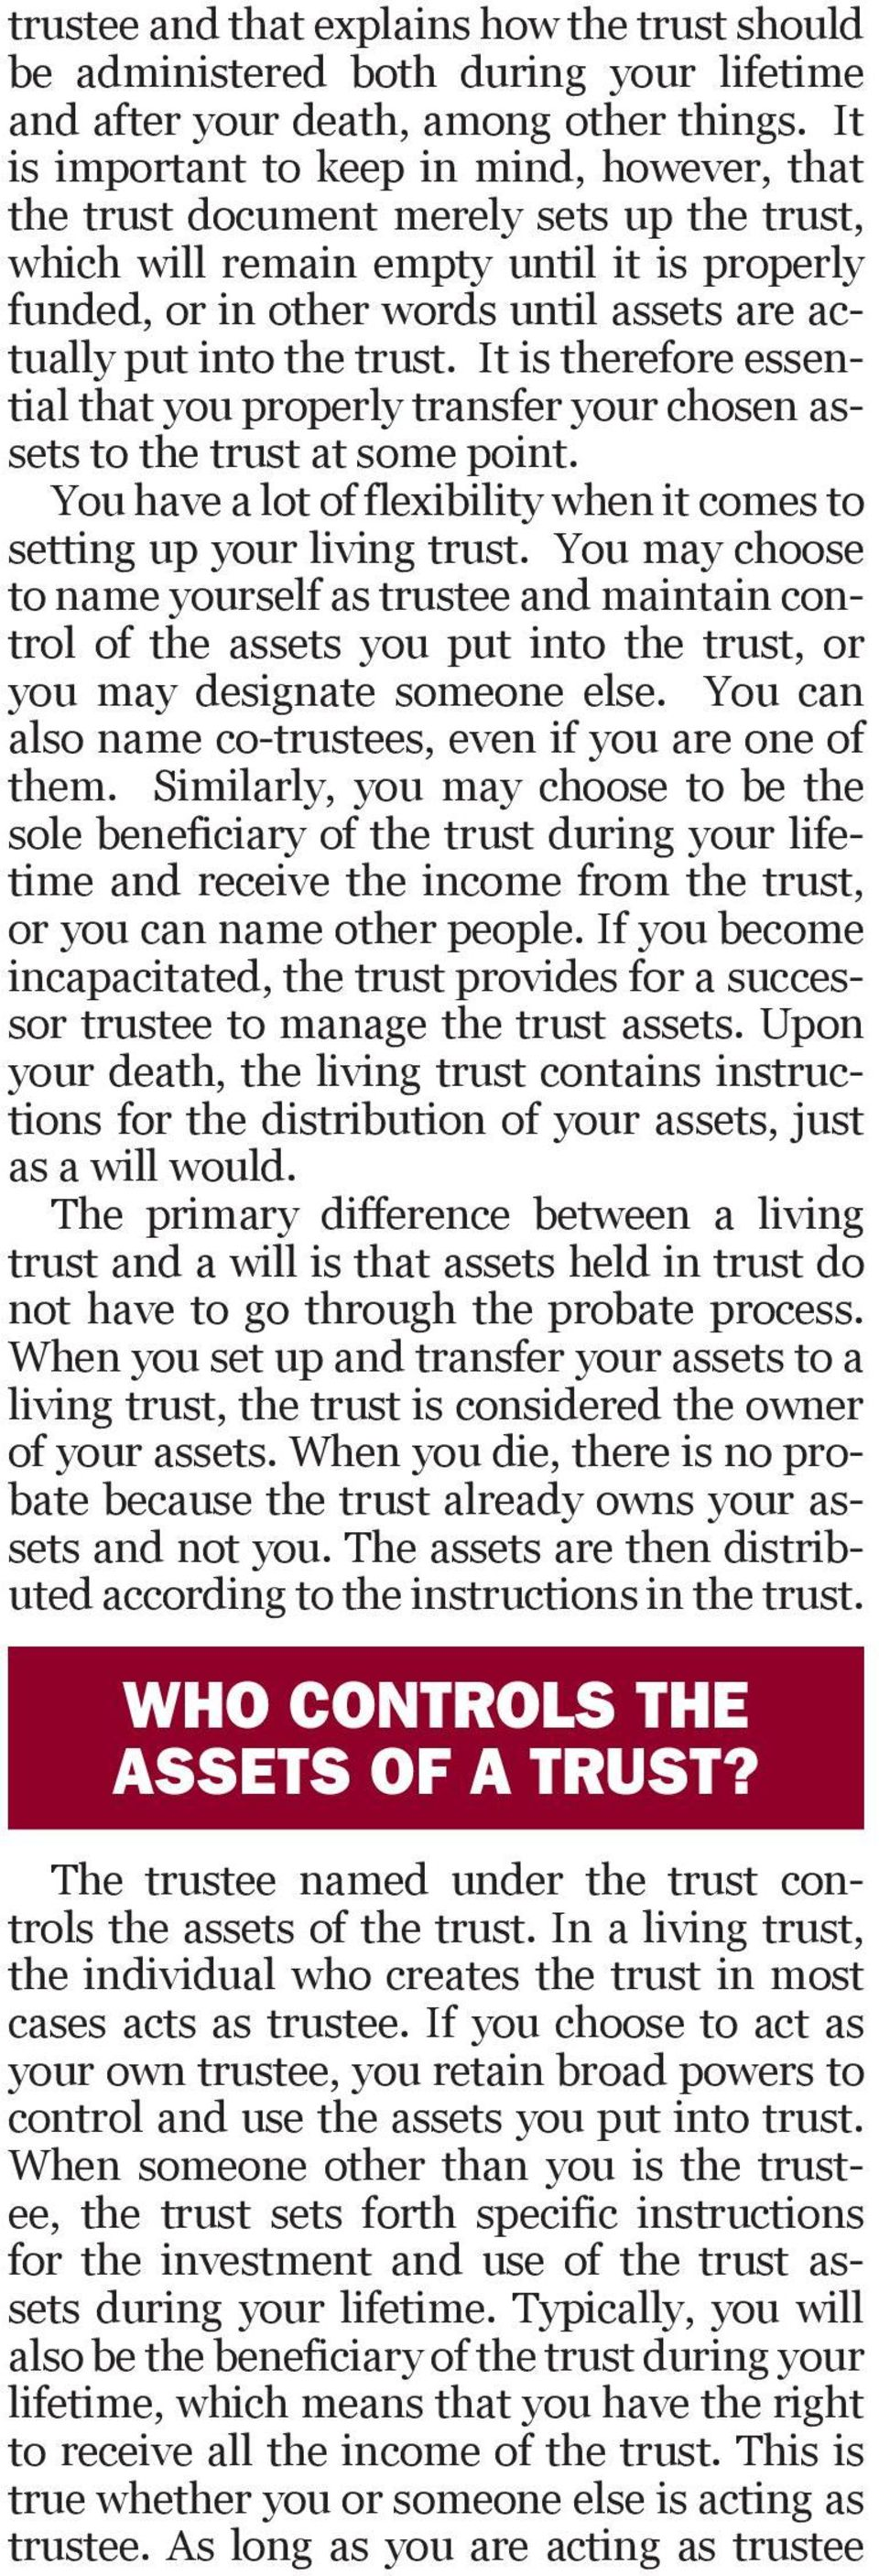 the trust. It is therefore essential that you properly transfer your chosen assets to the trust at some point. You have a lot of flexibility when it comes to setting up your living trust.